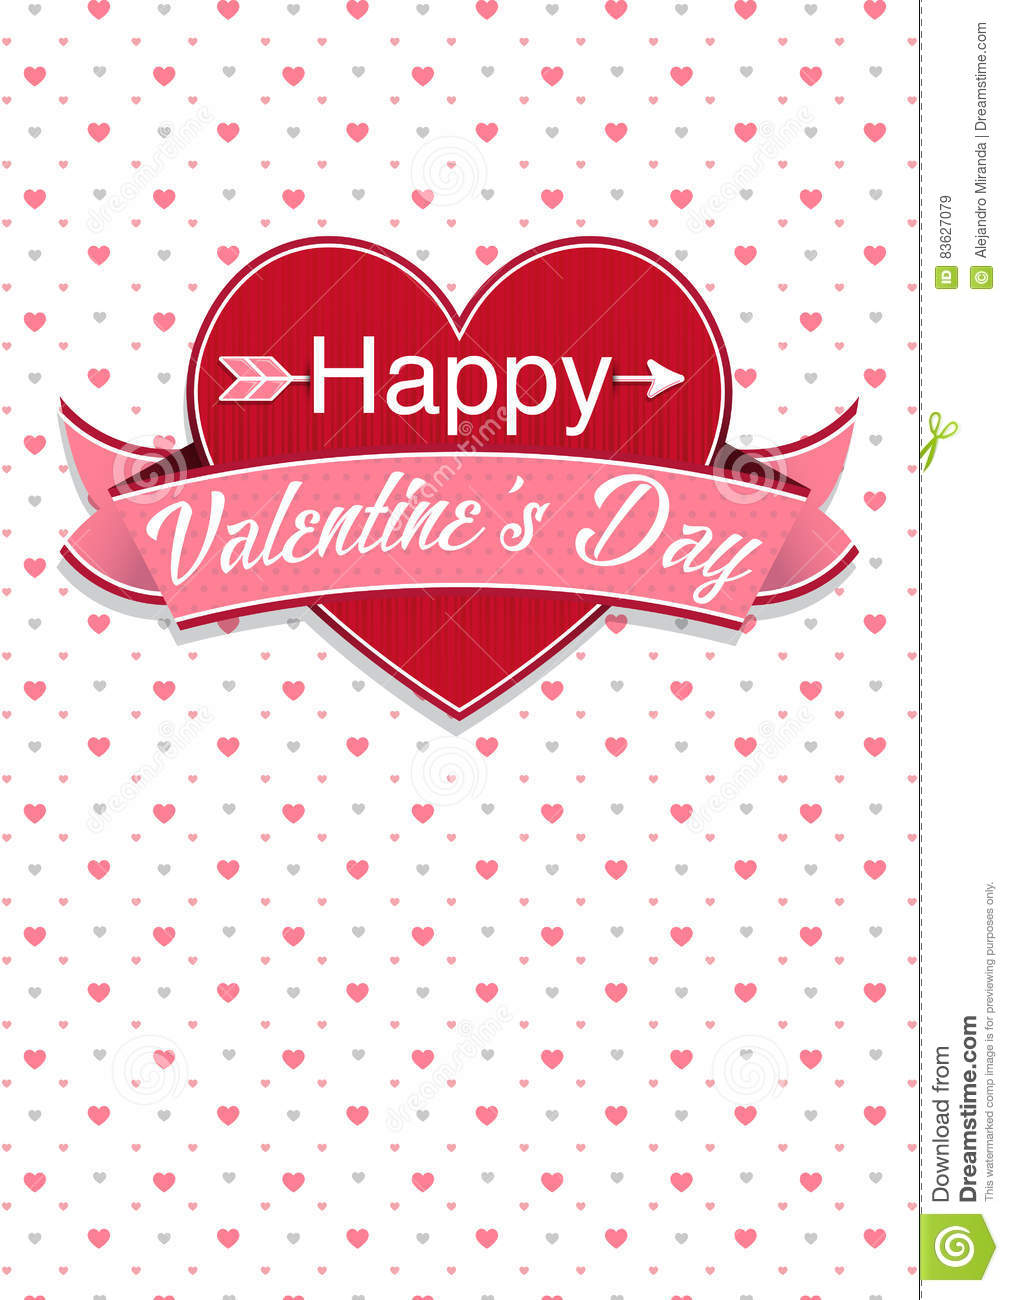 card cover with message happy valentines day on a red heart